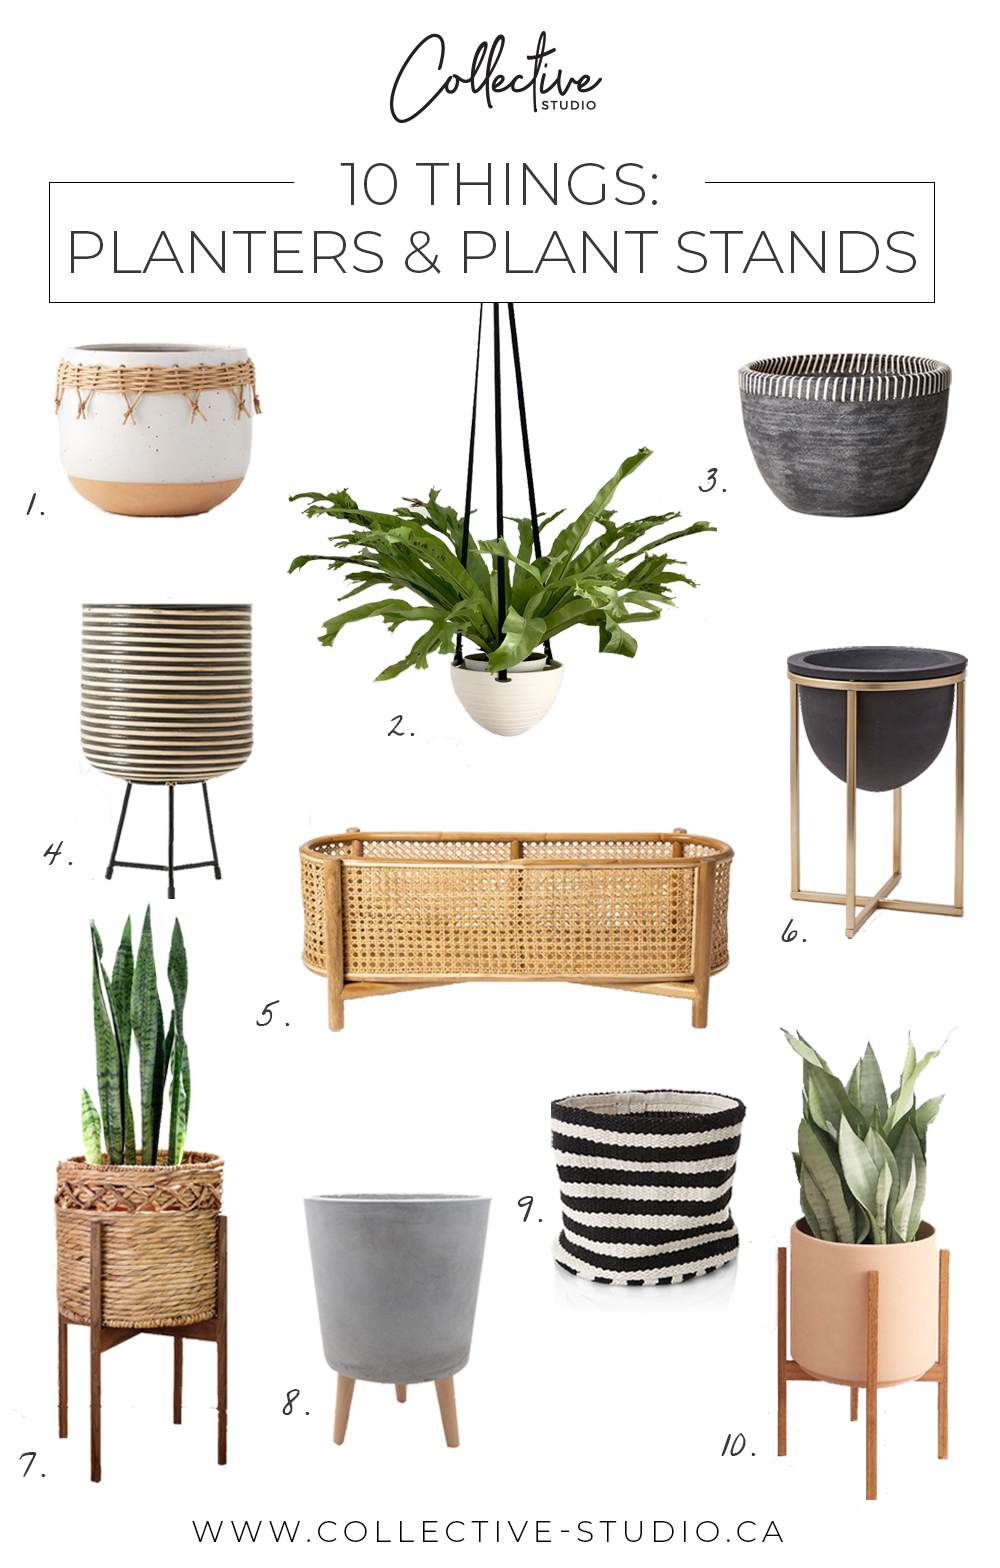 10 Things: Planters & Plant Stands